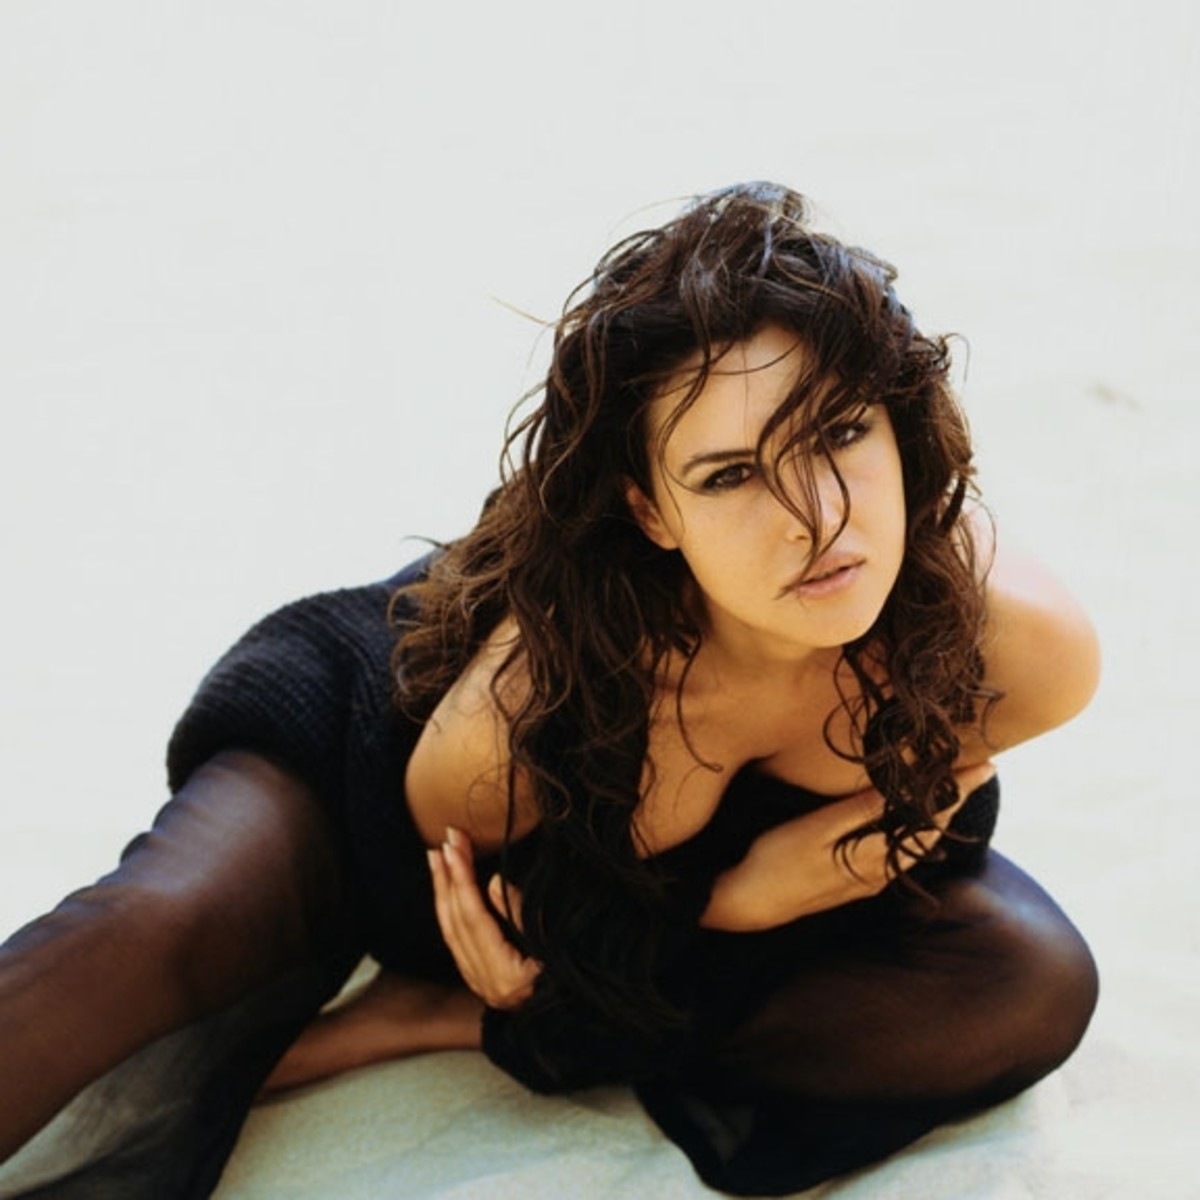 monica-bellucci-sexy-cleavage